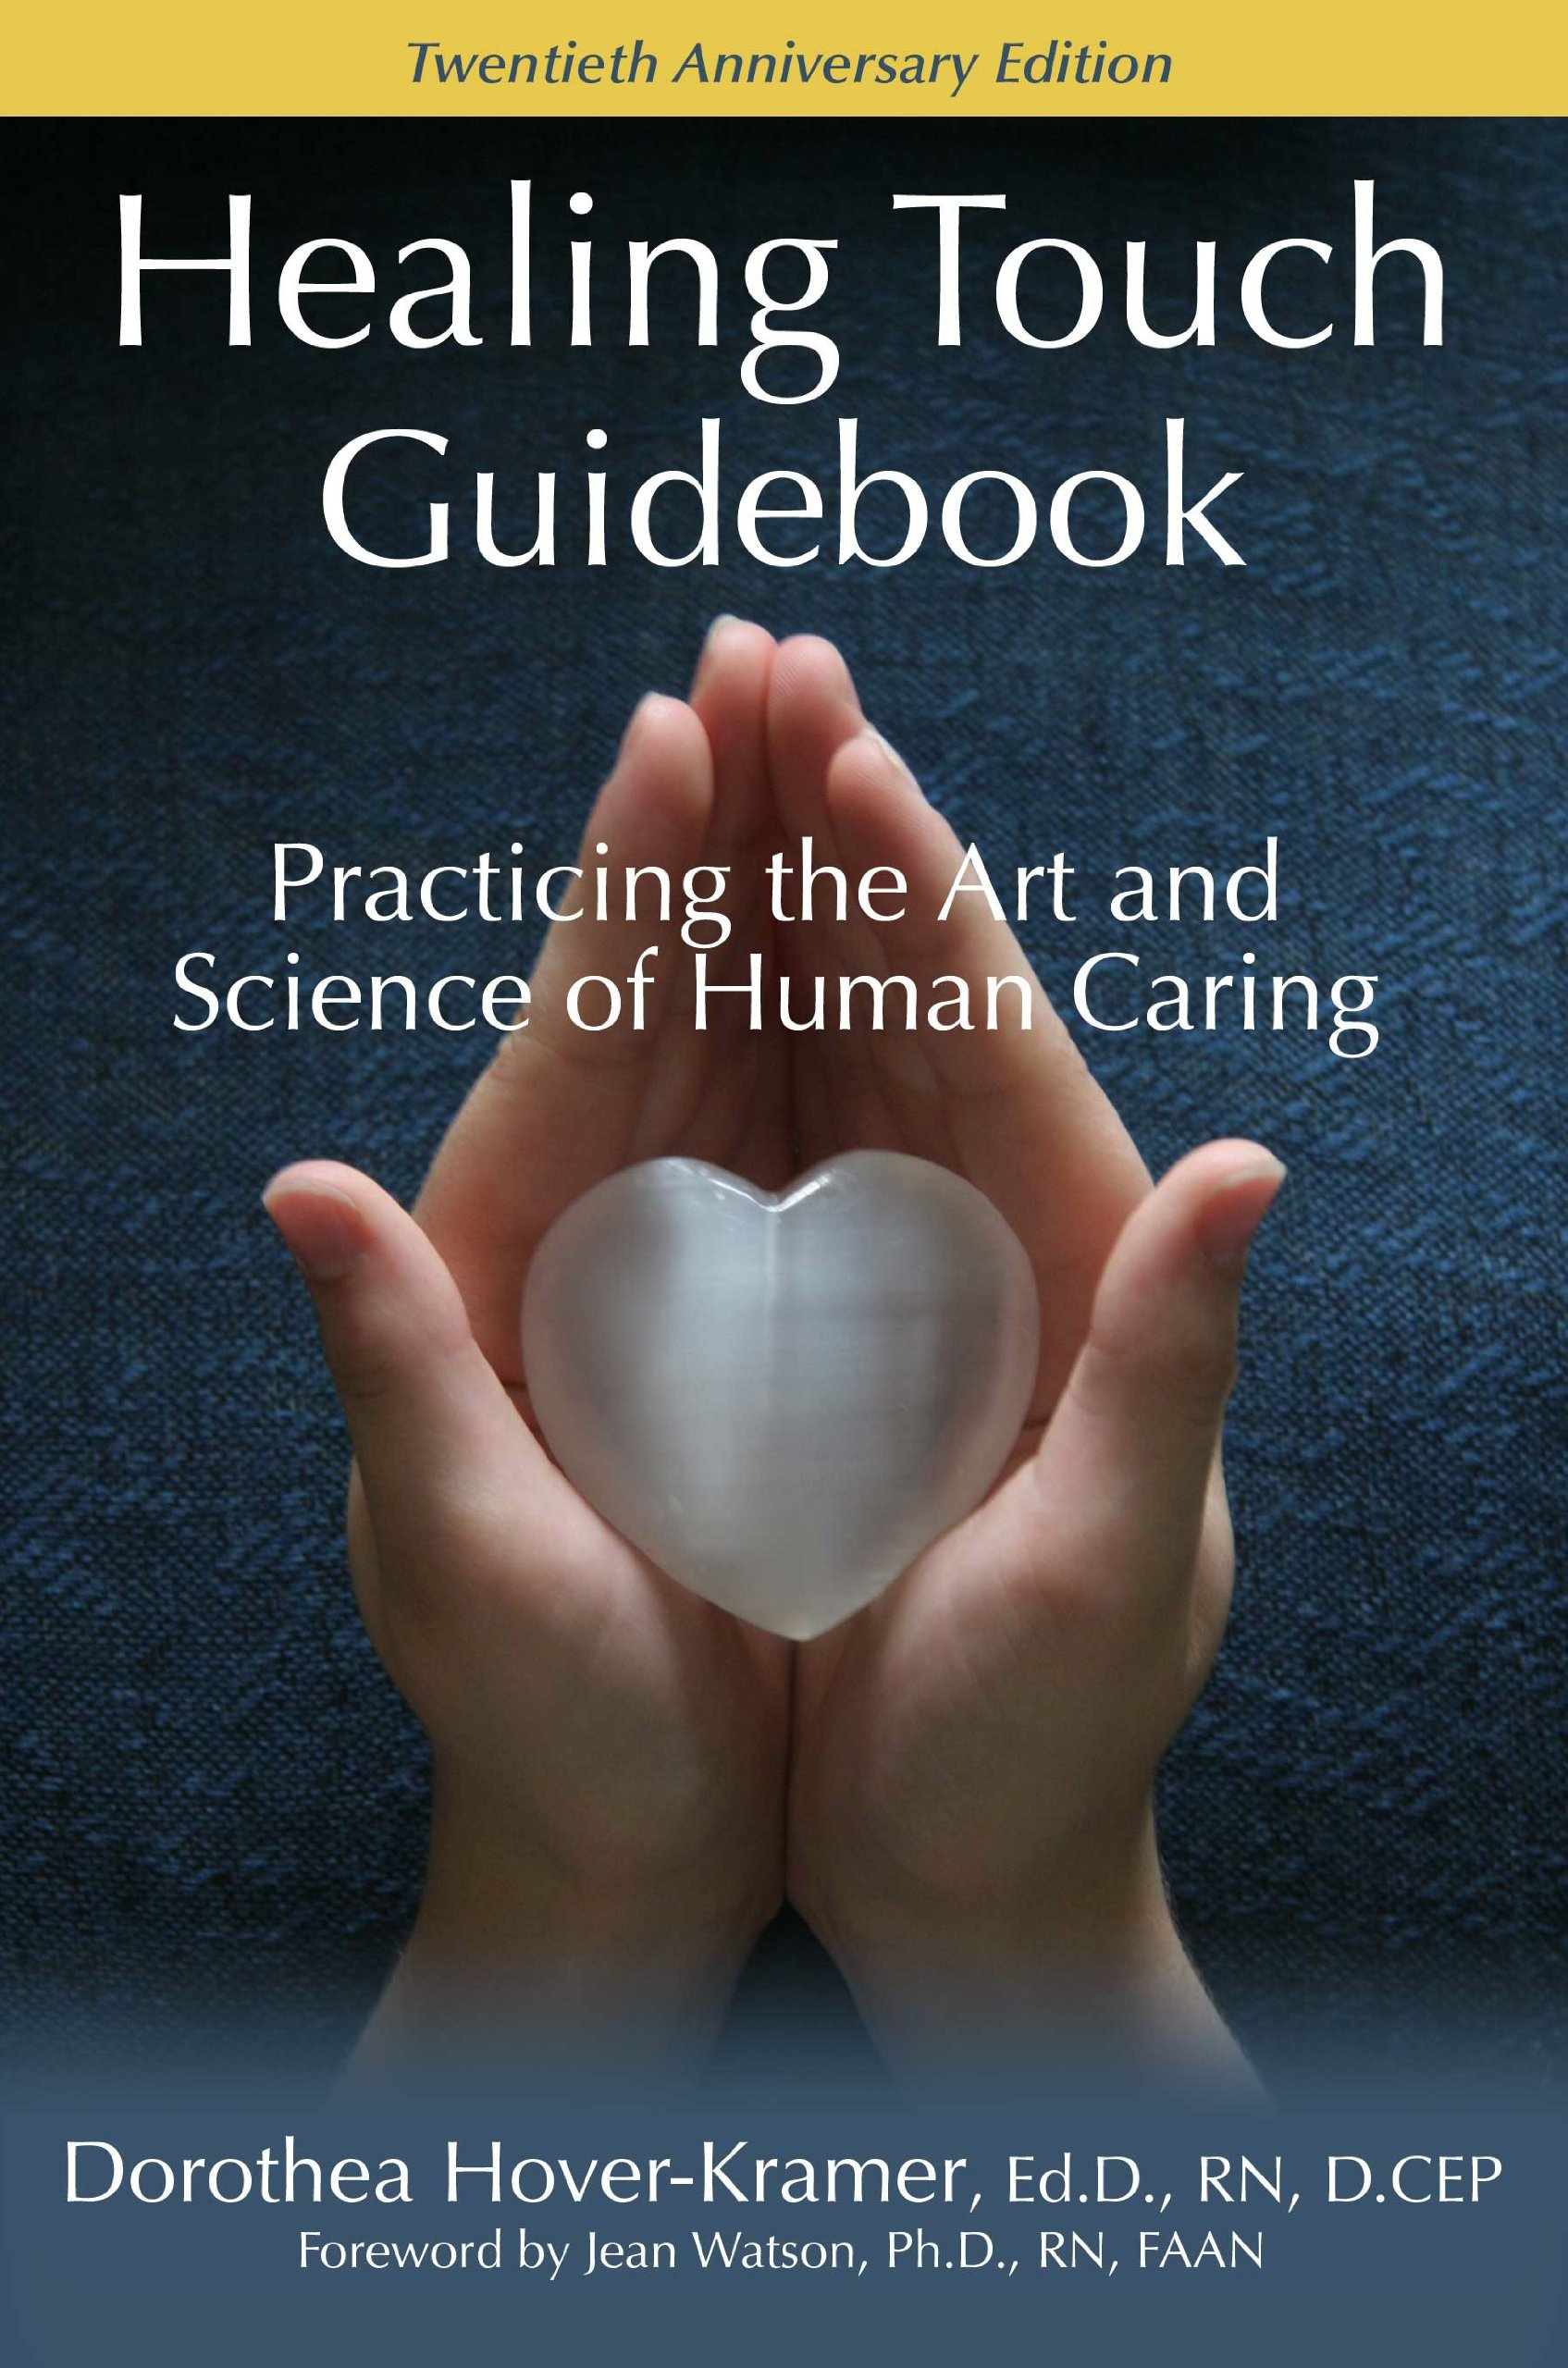 Download Healing Touch Guidebook, Practicing the Art and Science of Human Caring pdf